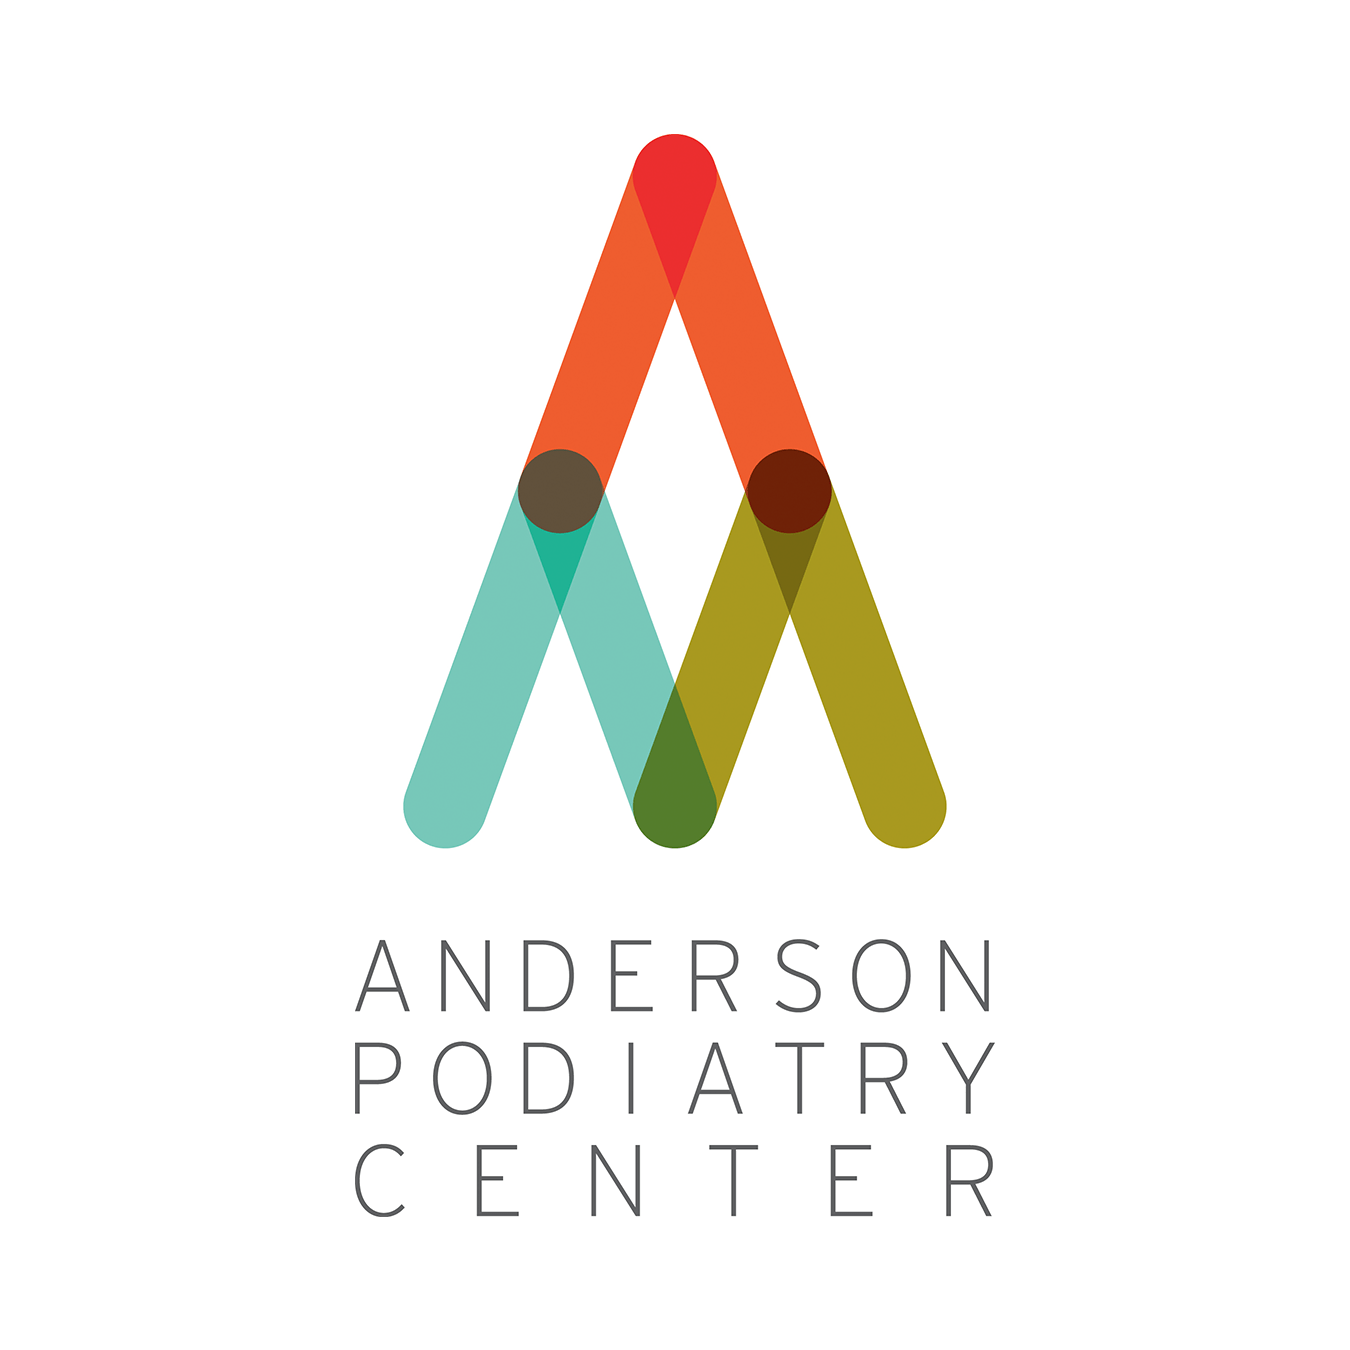 Anderson Podiatry Center